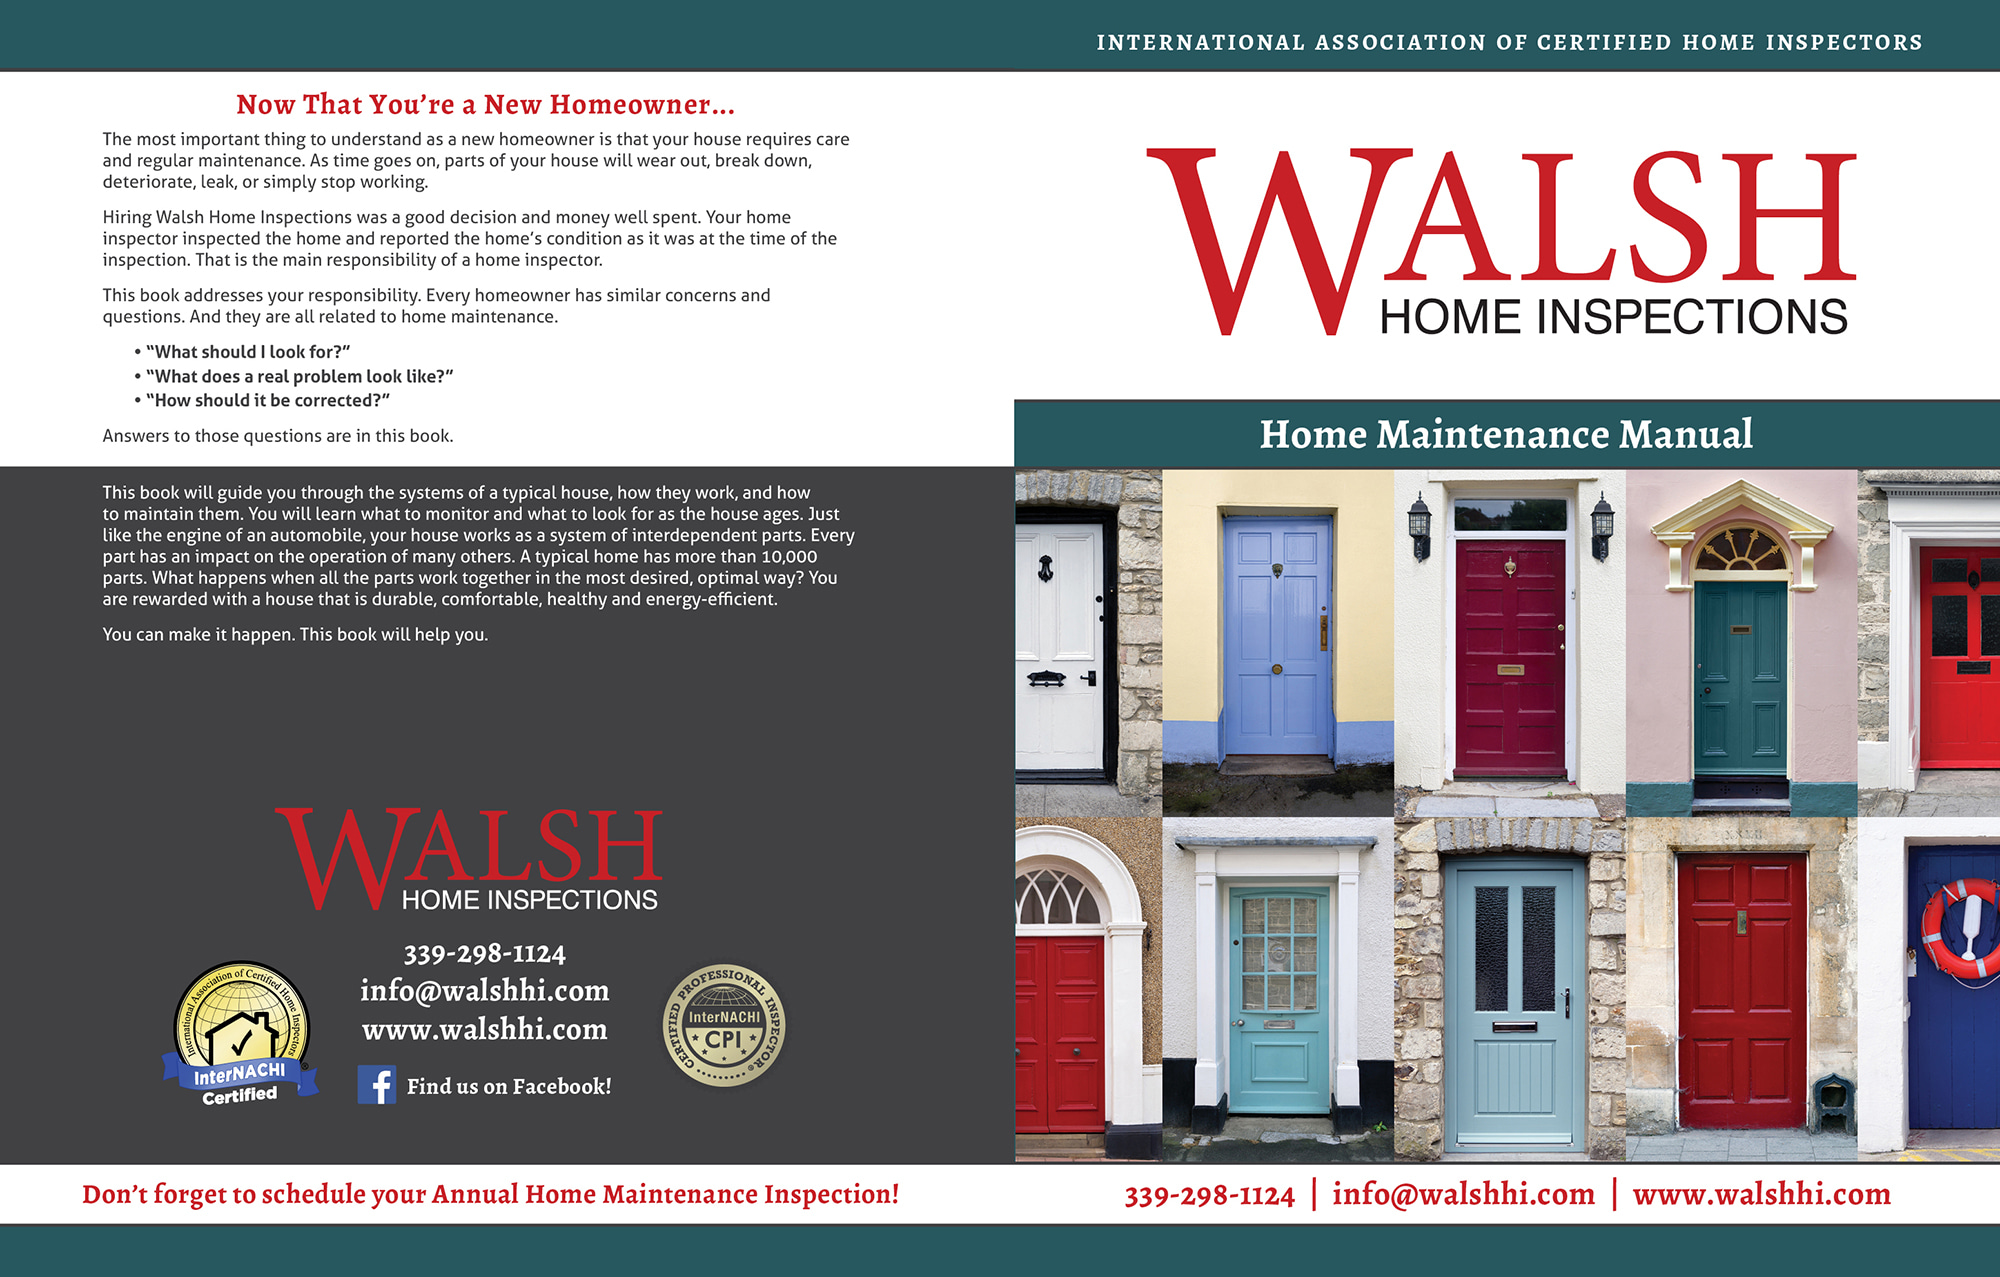 Custom Home Maintenance Book for Walsh Home Inspections.